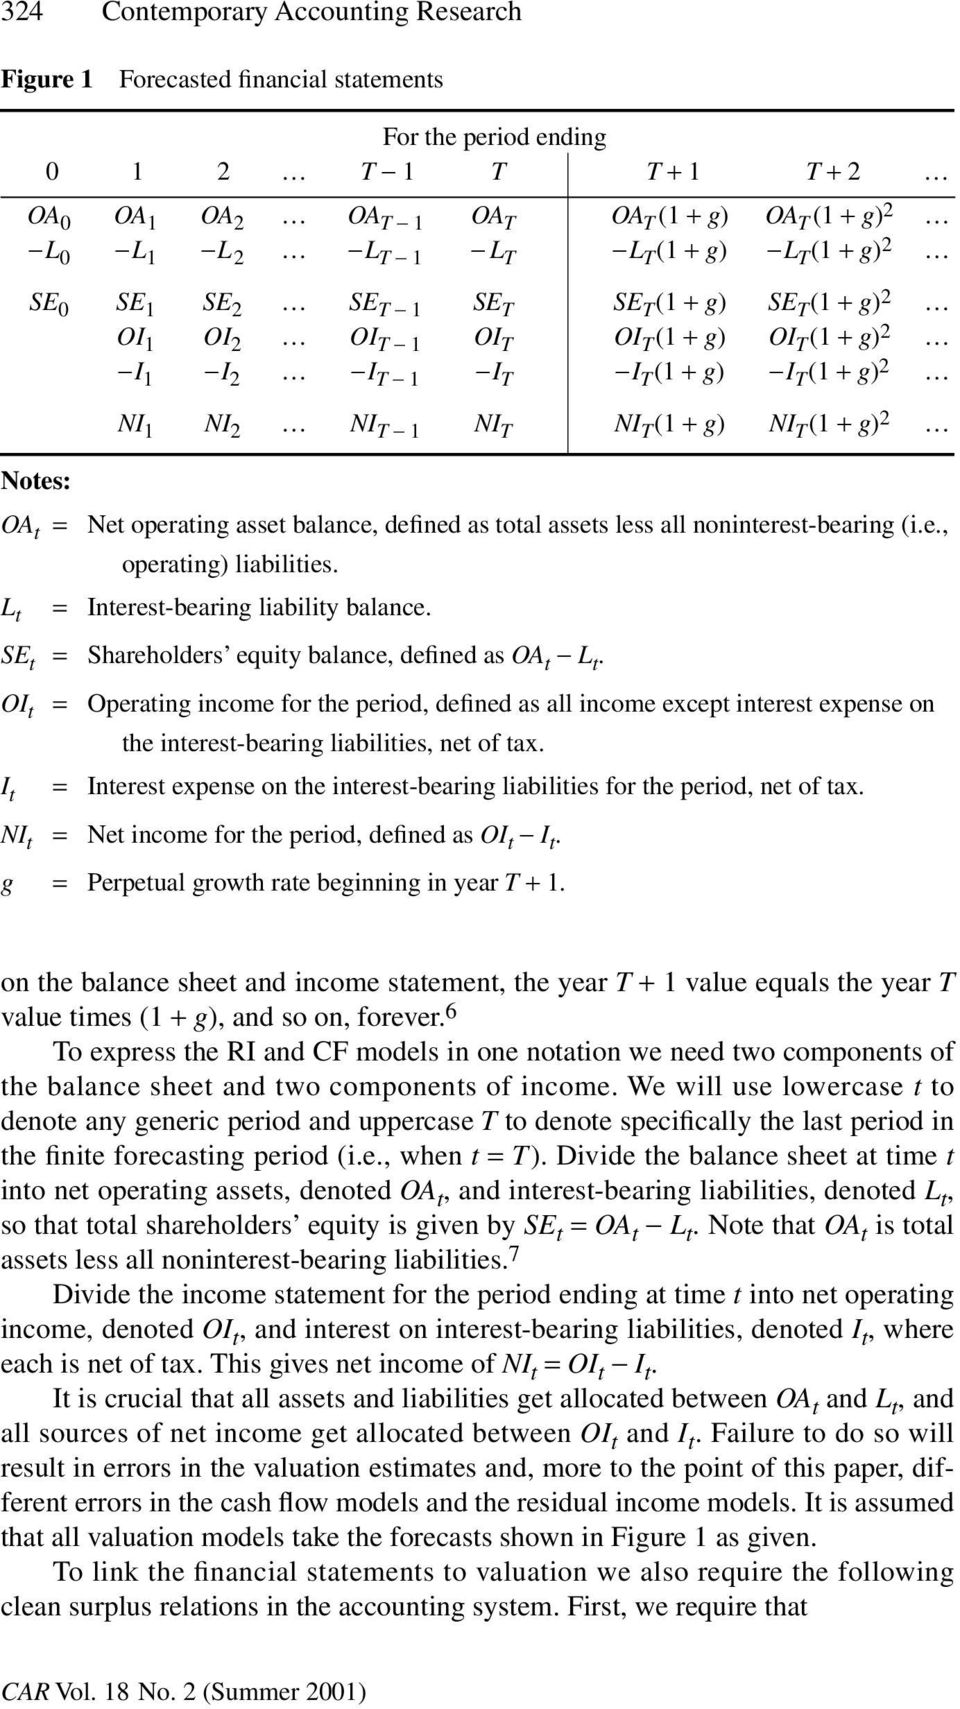 NI T (1 + g) NI T (1 + g) 2 Notes: OA t = Net operating asset balance, defined as total assets less all noninterest-bearing (i.e., operating) liabilities. L t = Interest-bearing liability balance.